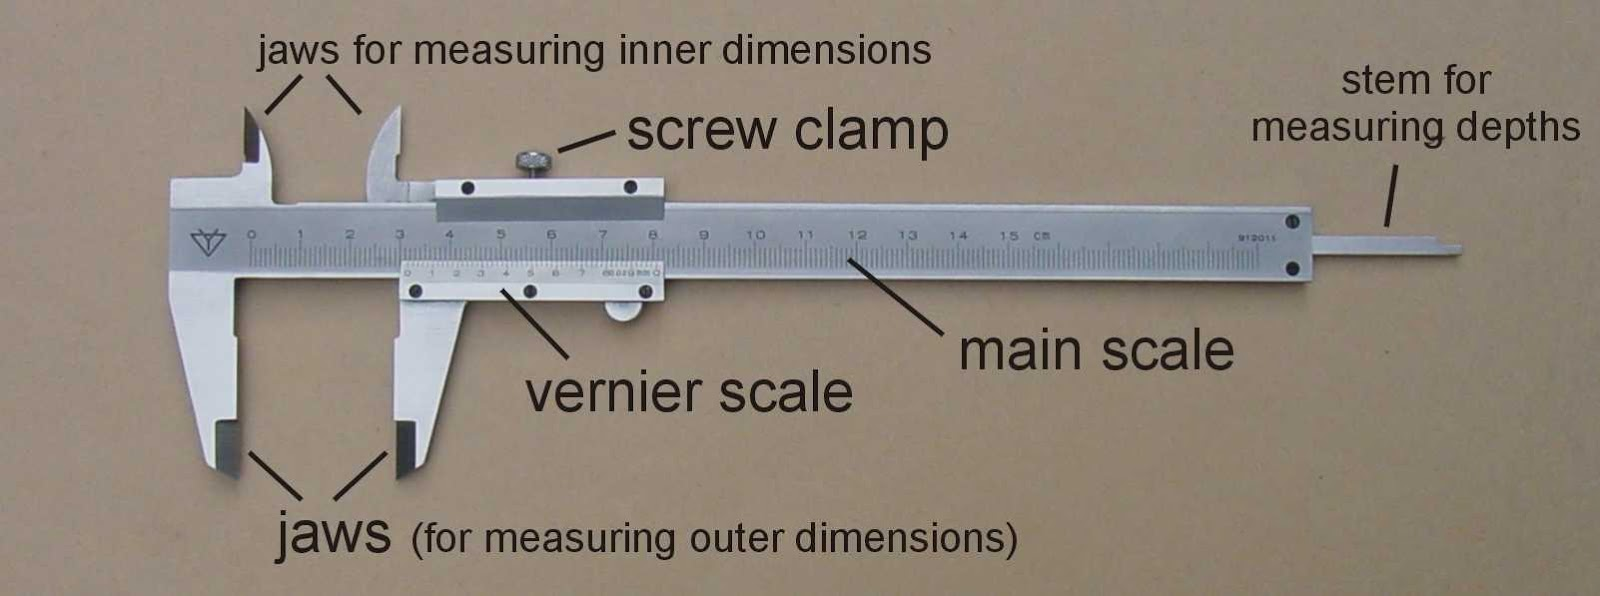 EduMission: Physics Form 4: Chapter 1 - Vernier Calipers